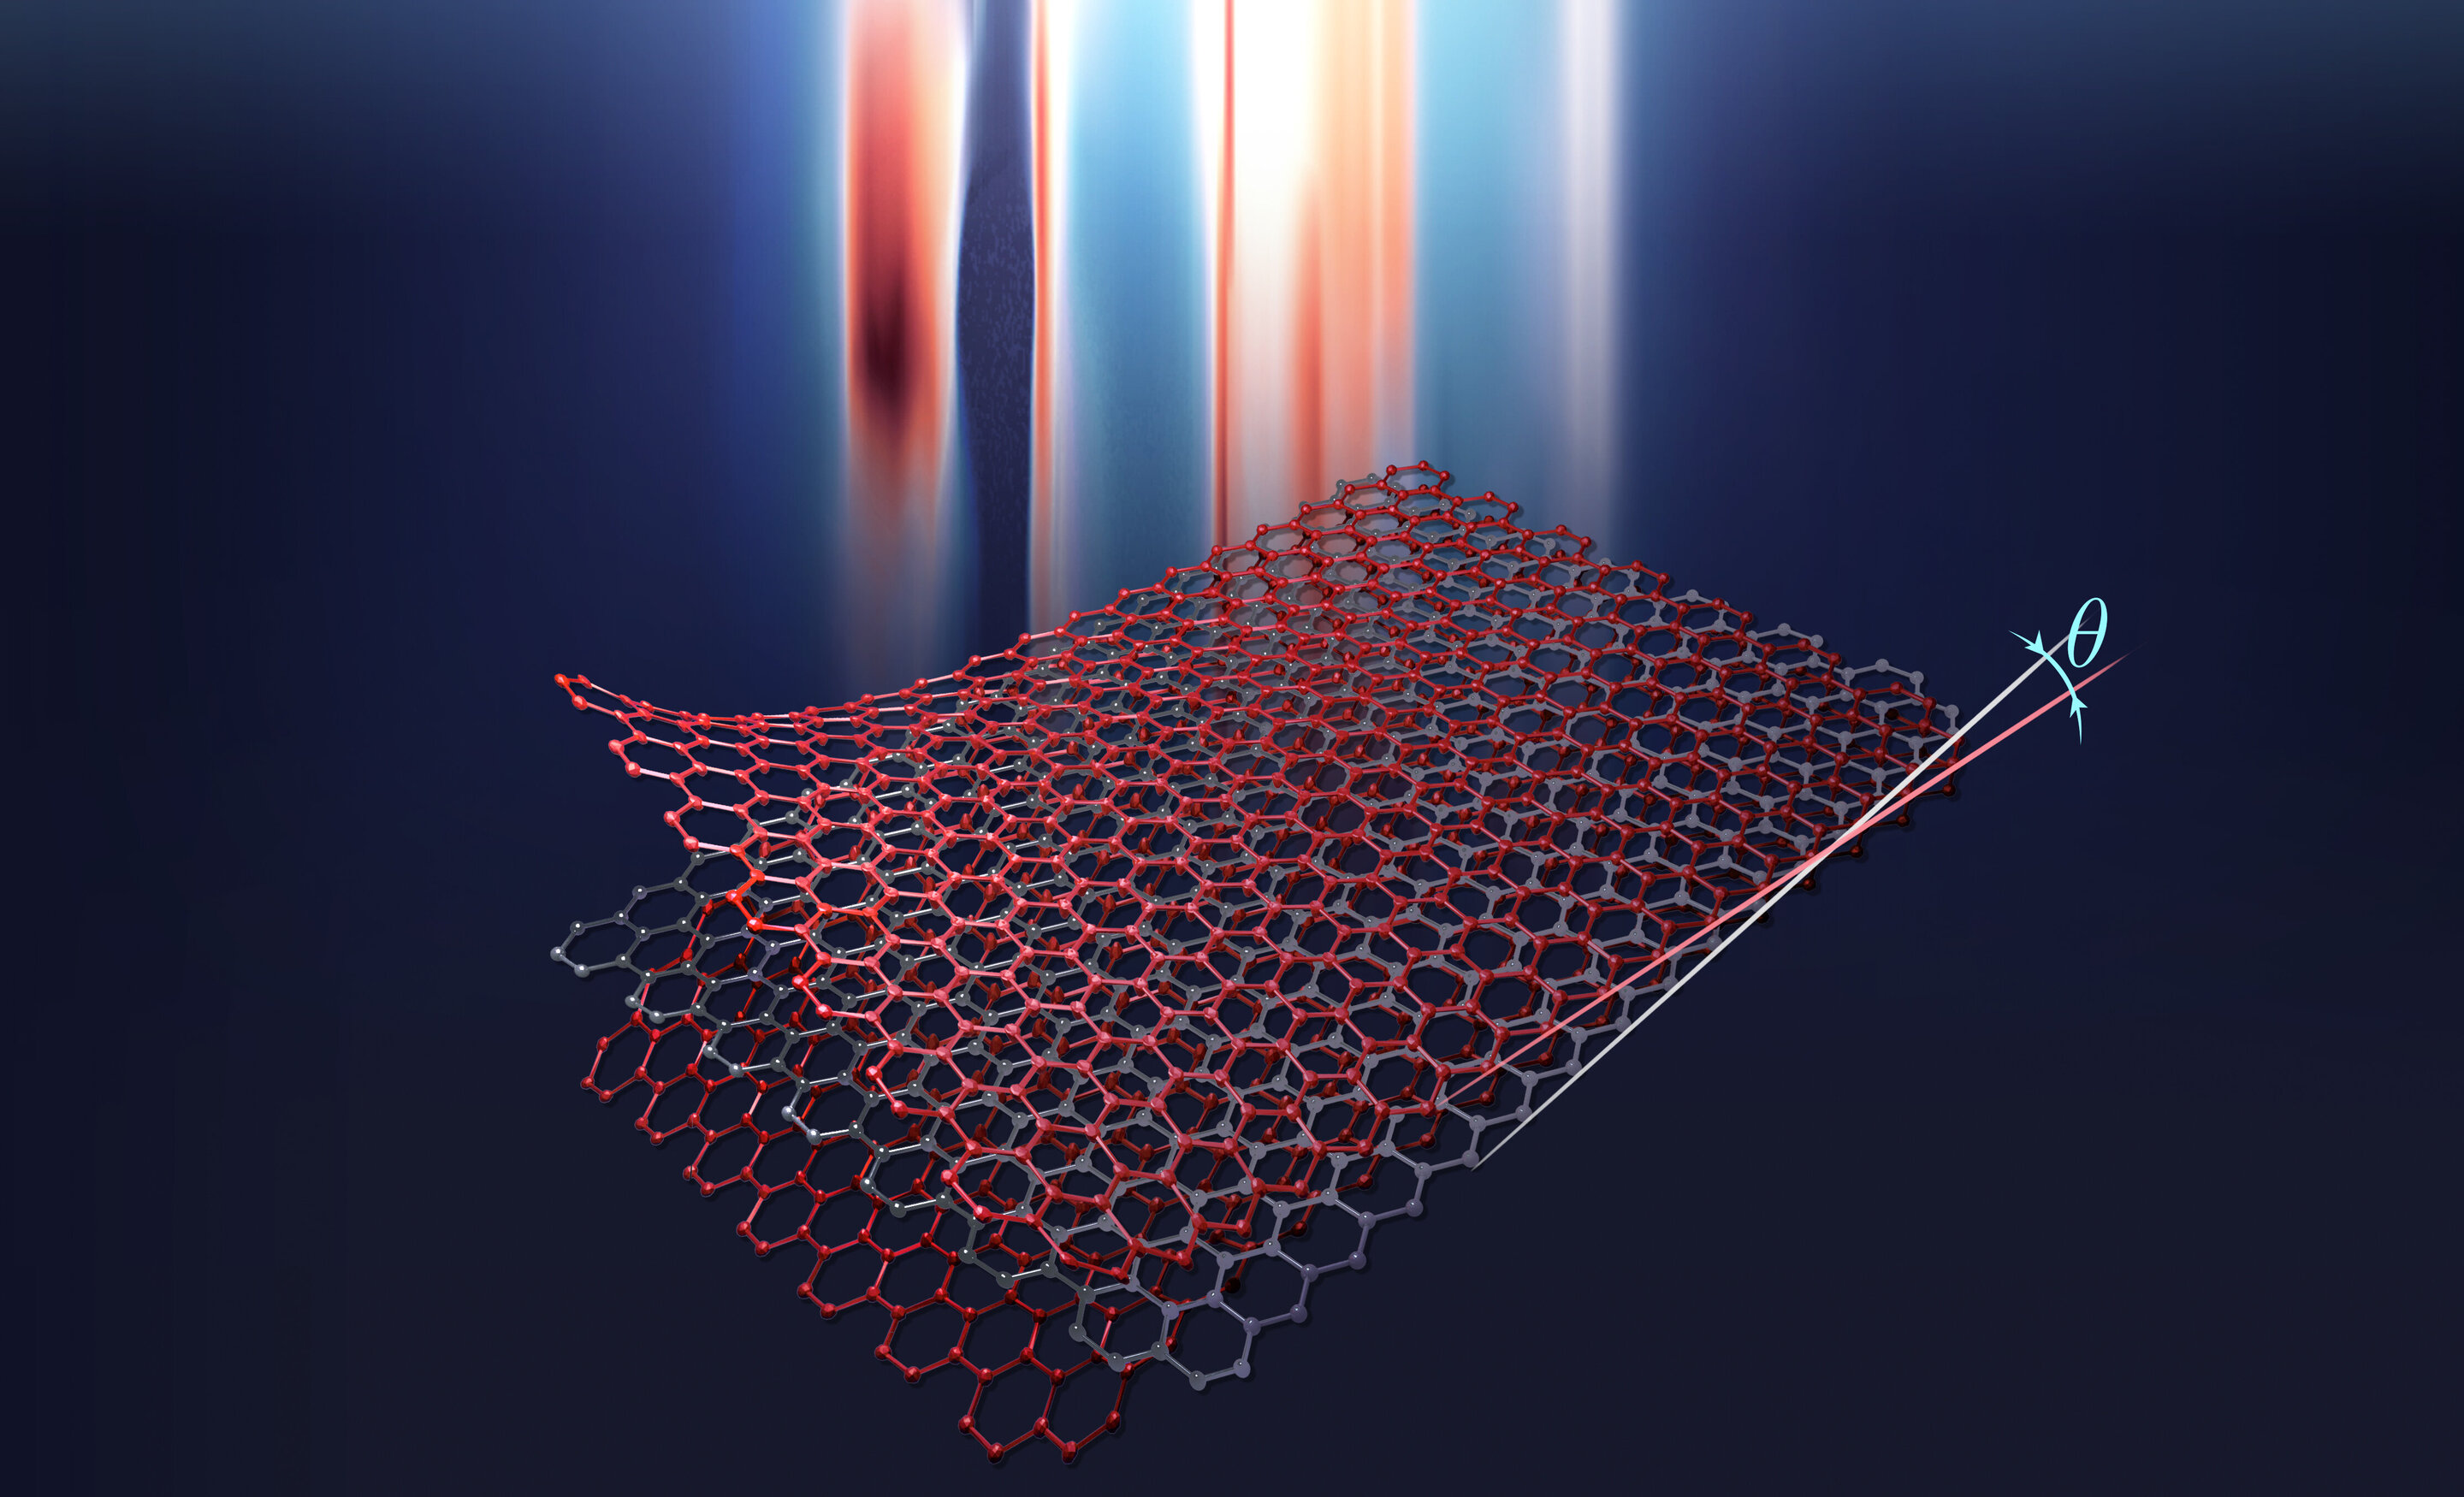 Scientists use trilayer graphene to observe more robust superconductivity